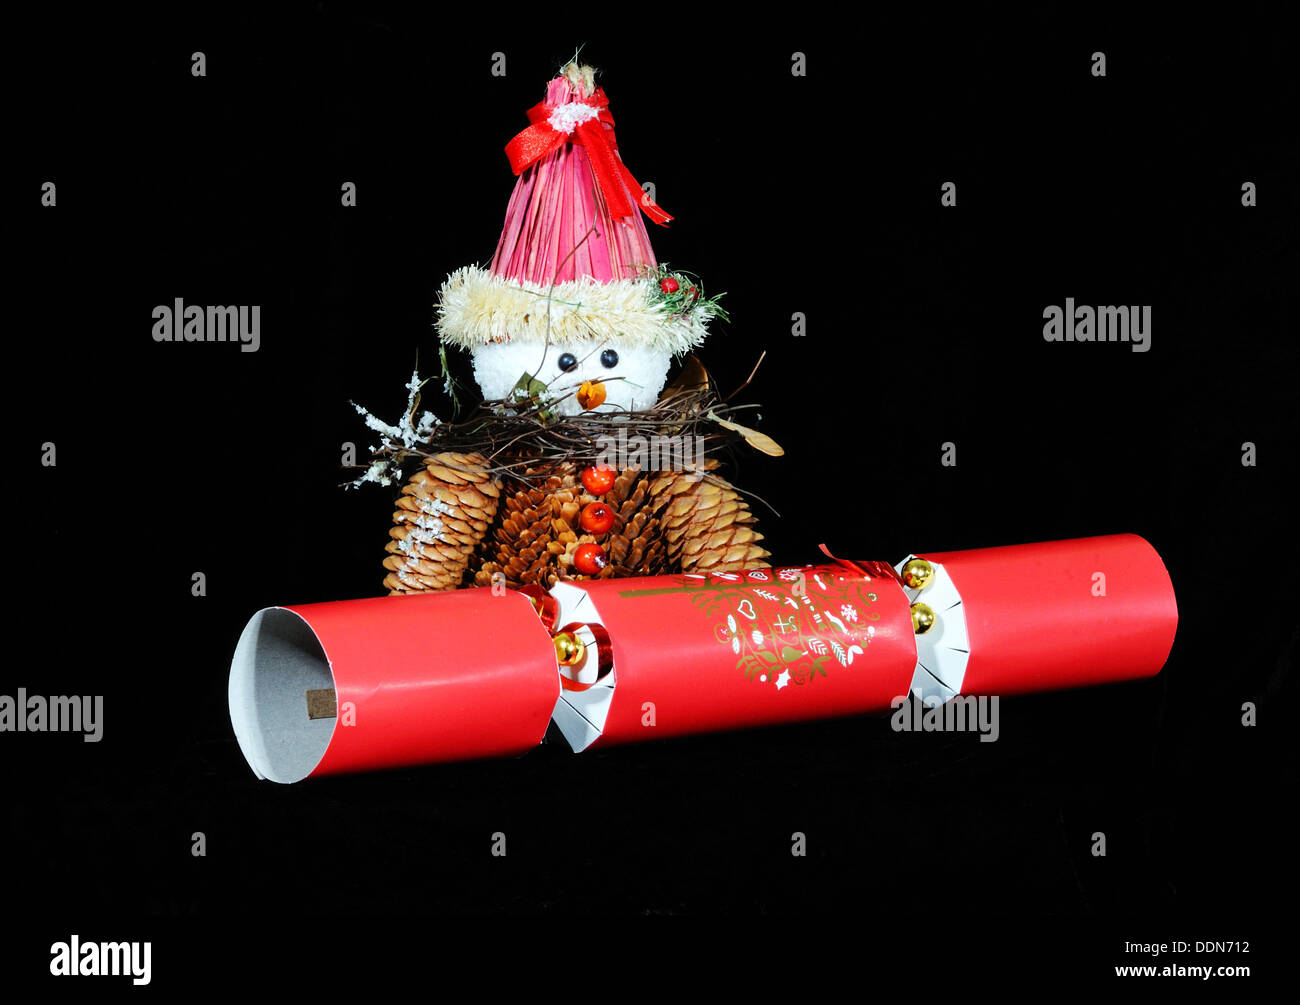 Christmas cracker hats stock photos christmas cracker hats stock snowman made from pinecones with a red christmas cracker set against a black background solutioingenieria Images